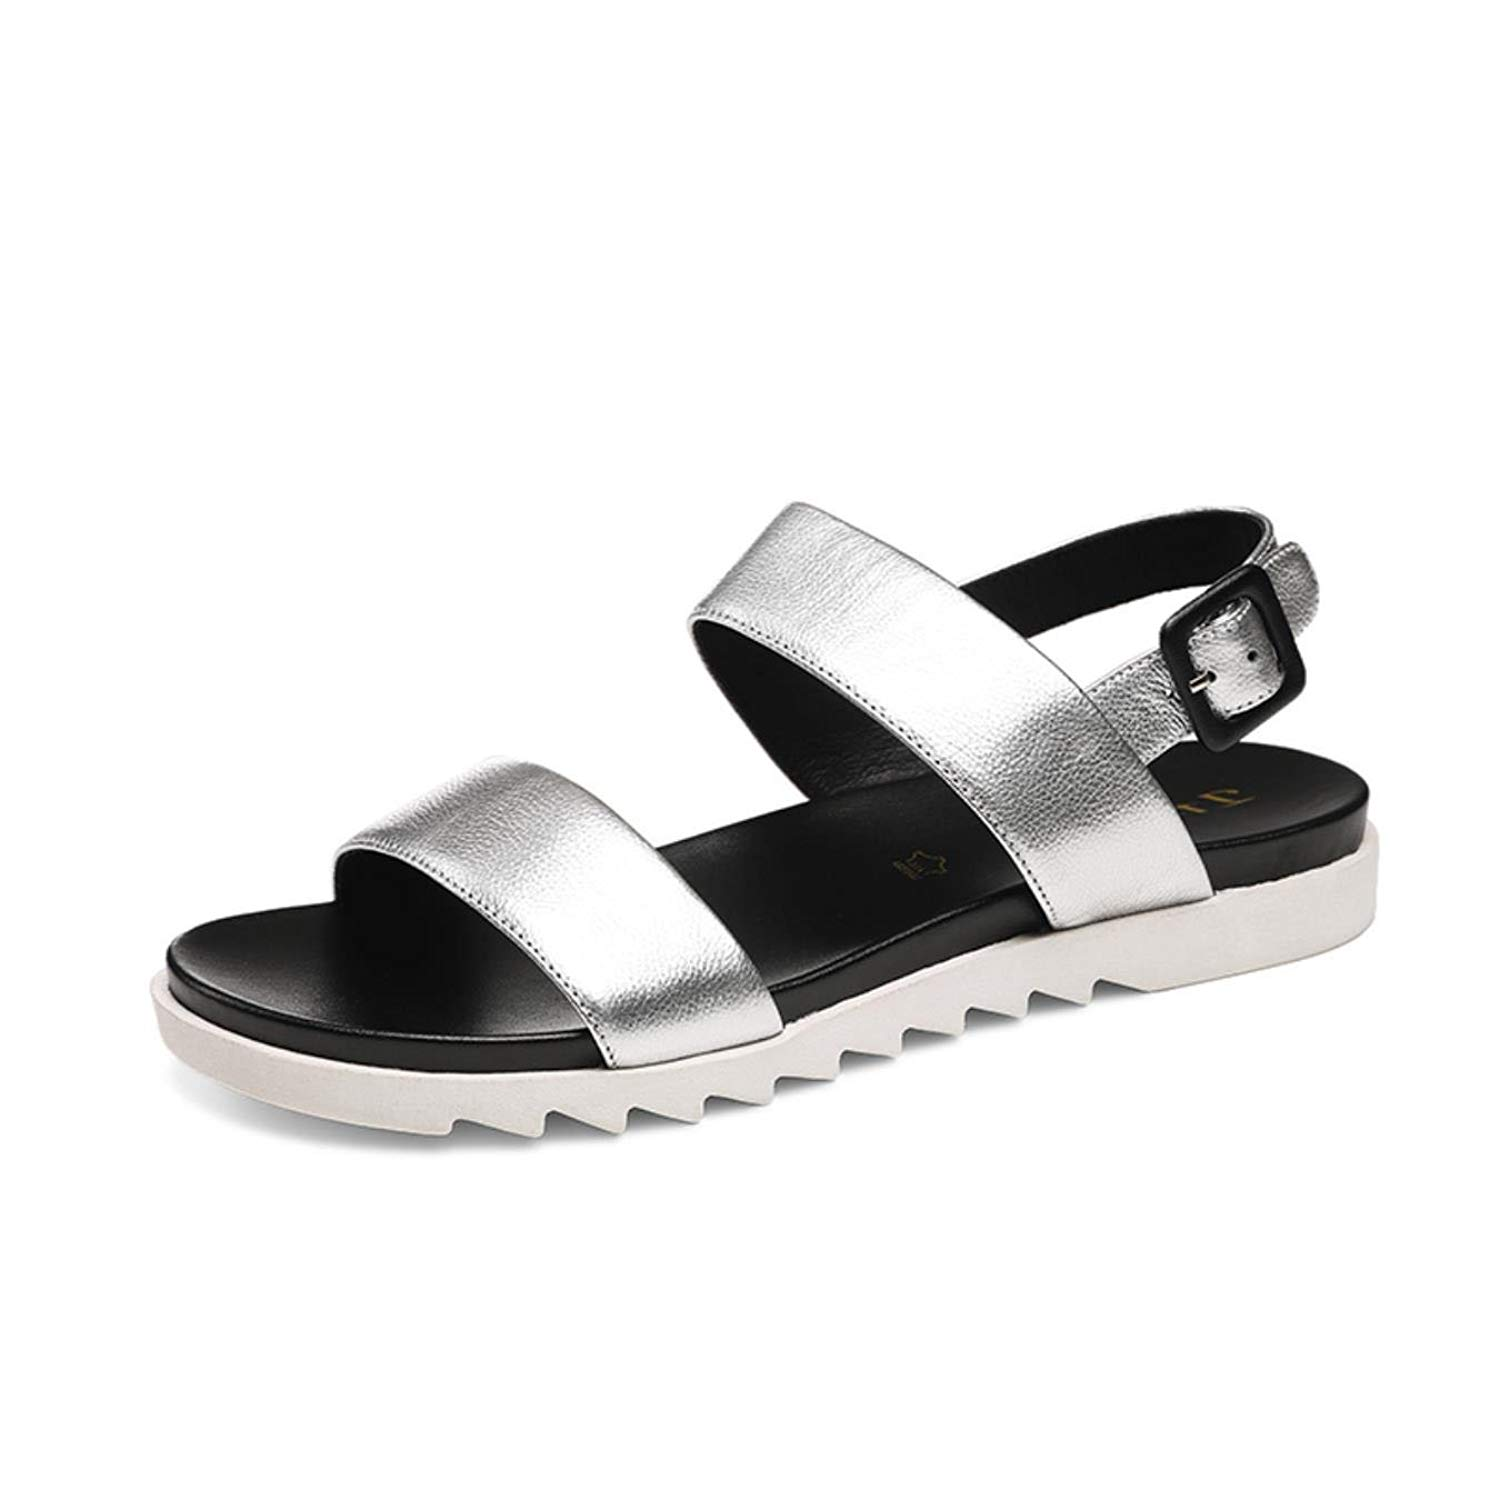 3efdaccd2 Get Quotations · Flat Sandals Silver Women Casual Comfortable Soft Leather  Buckle Back Strap Sandalias New Summer Russian Size